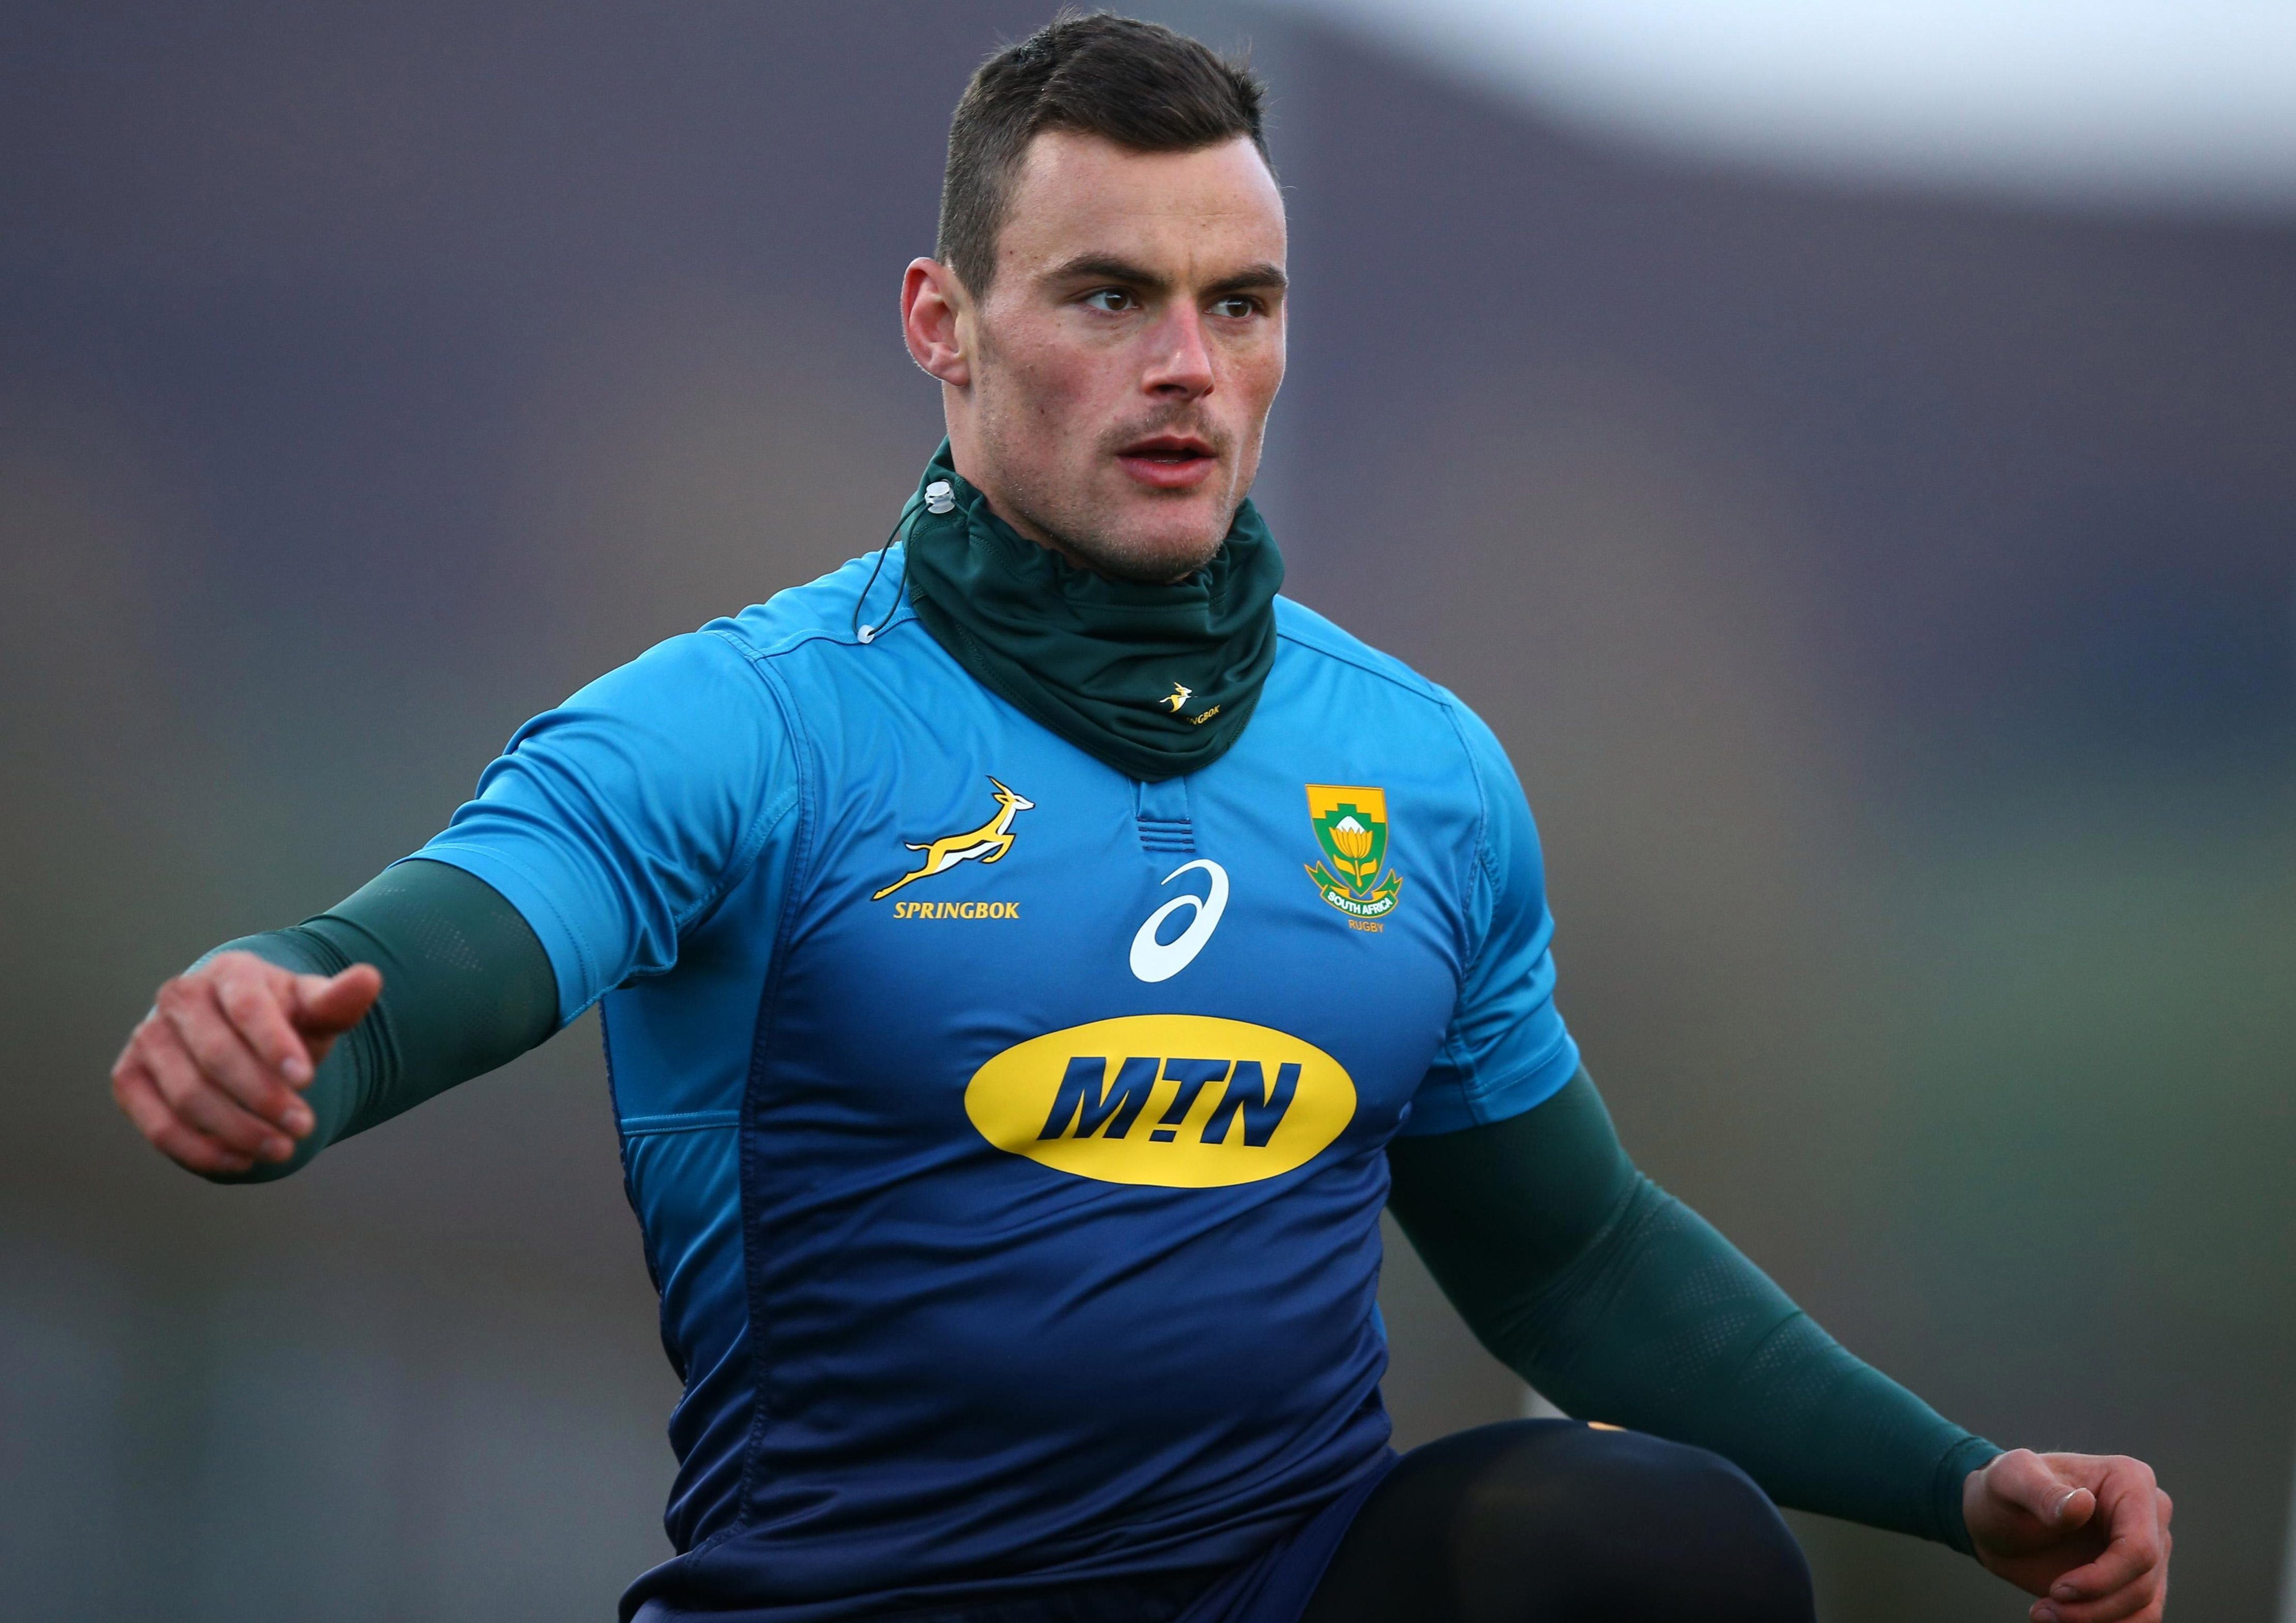 A burka was reportedly found in the room belonging toJesse Kriel